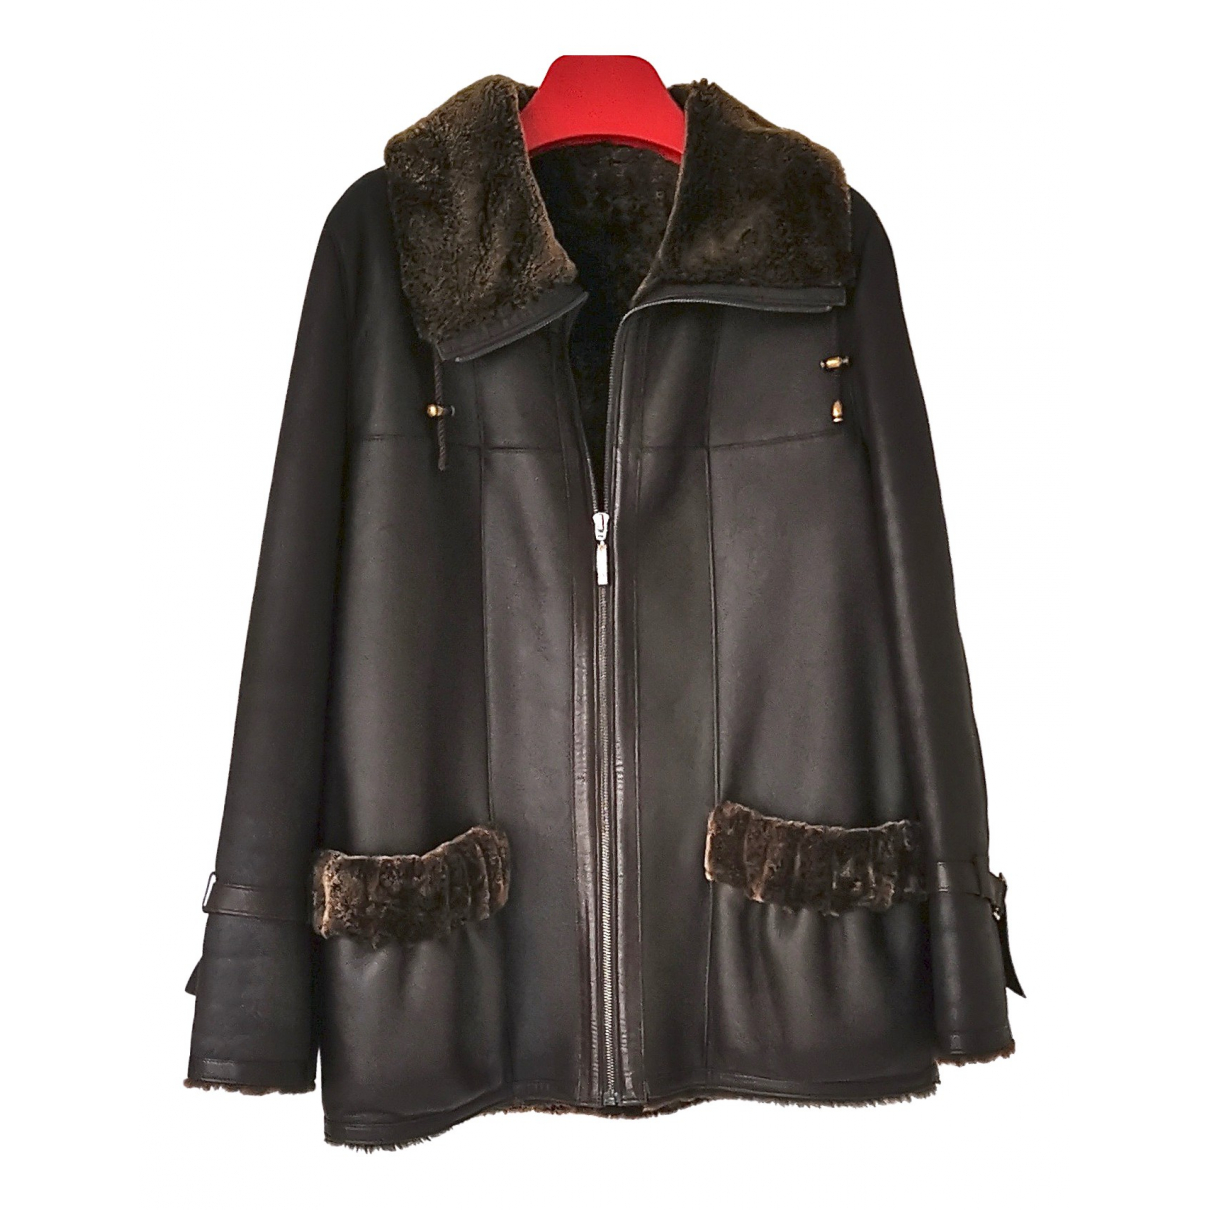 Sprung Frères N Brown Leather Leather jacket for Women 42 FR